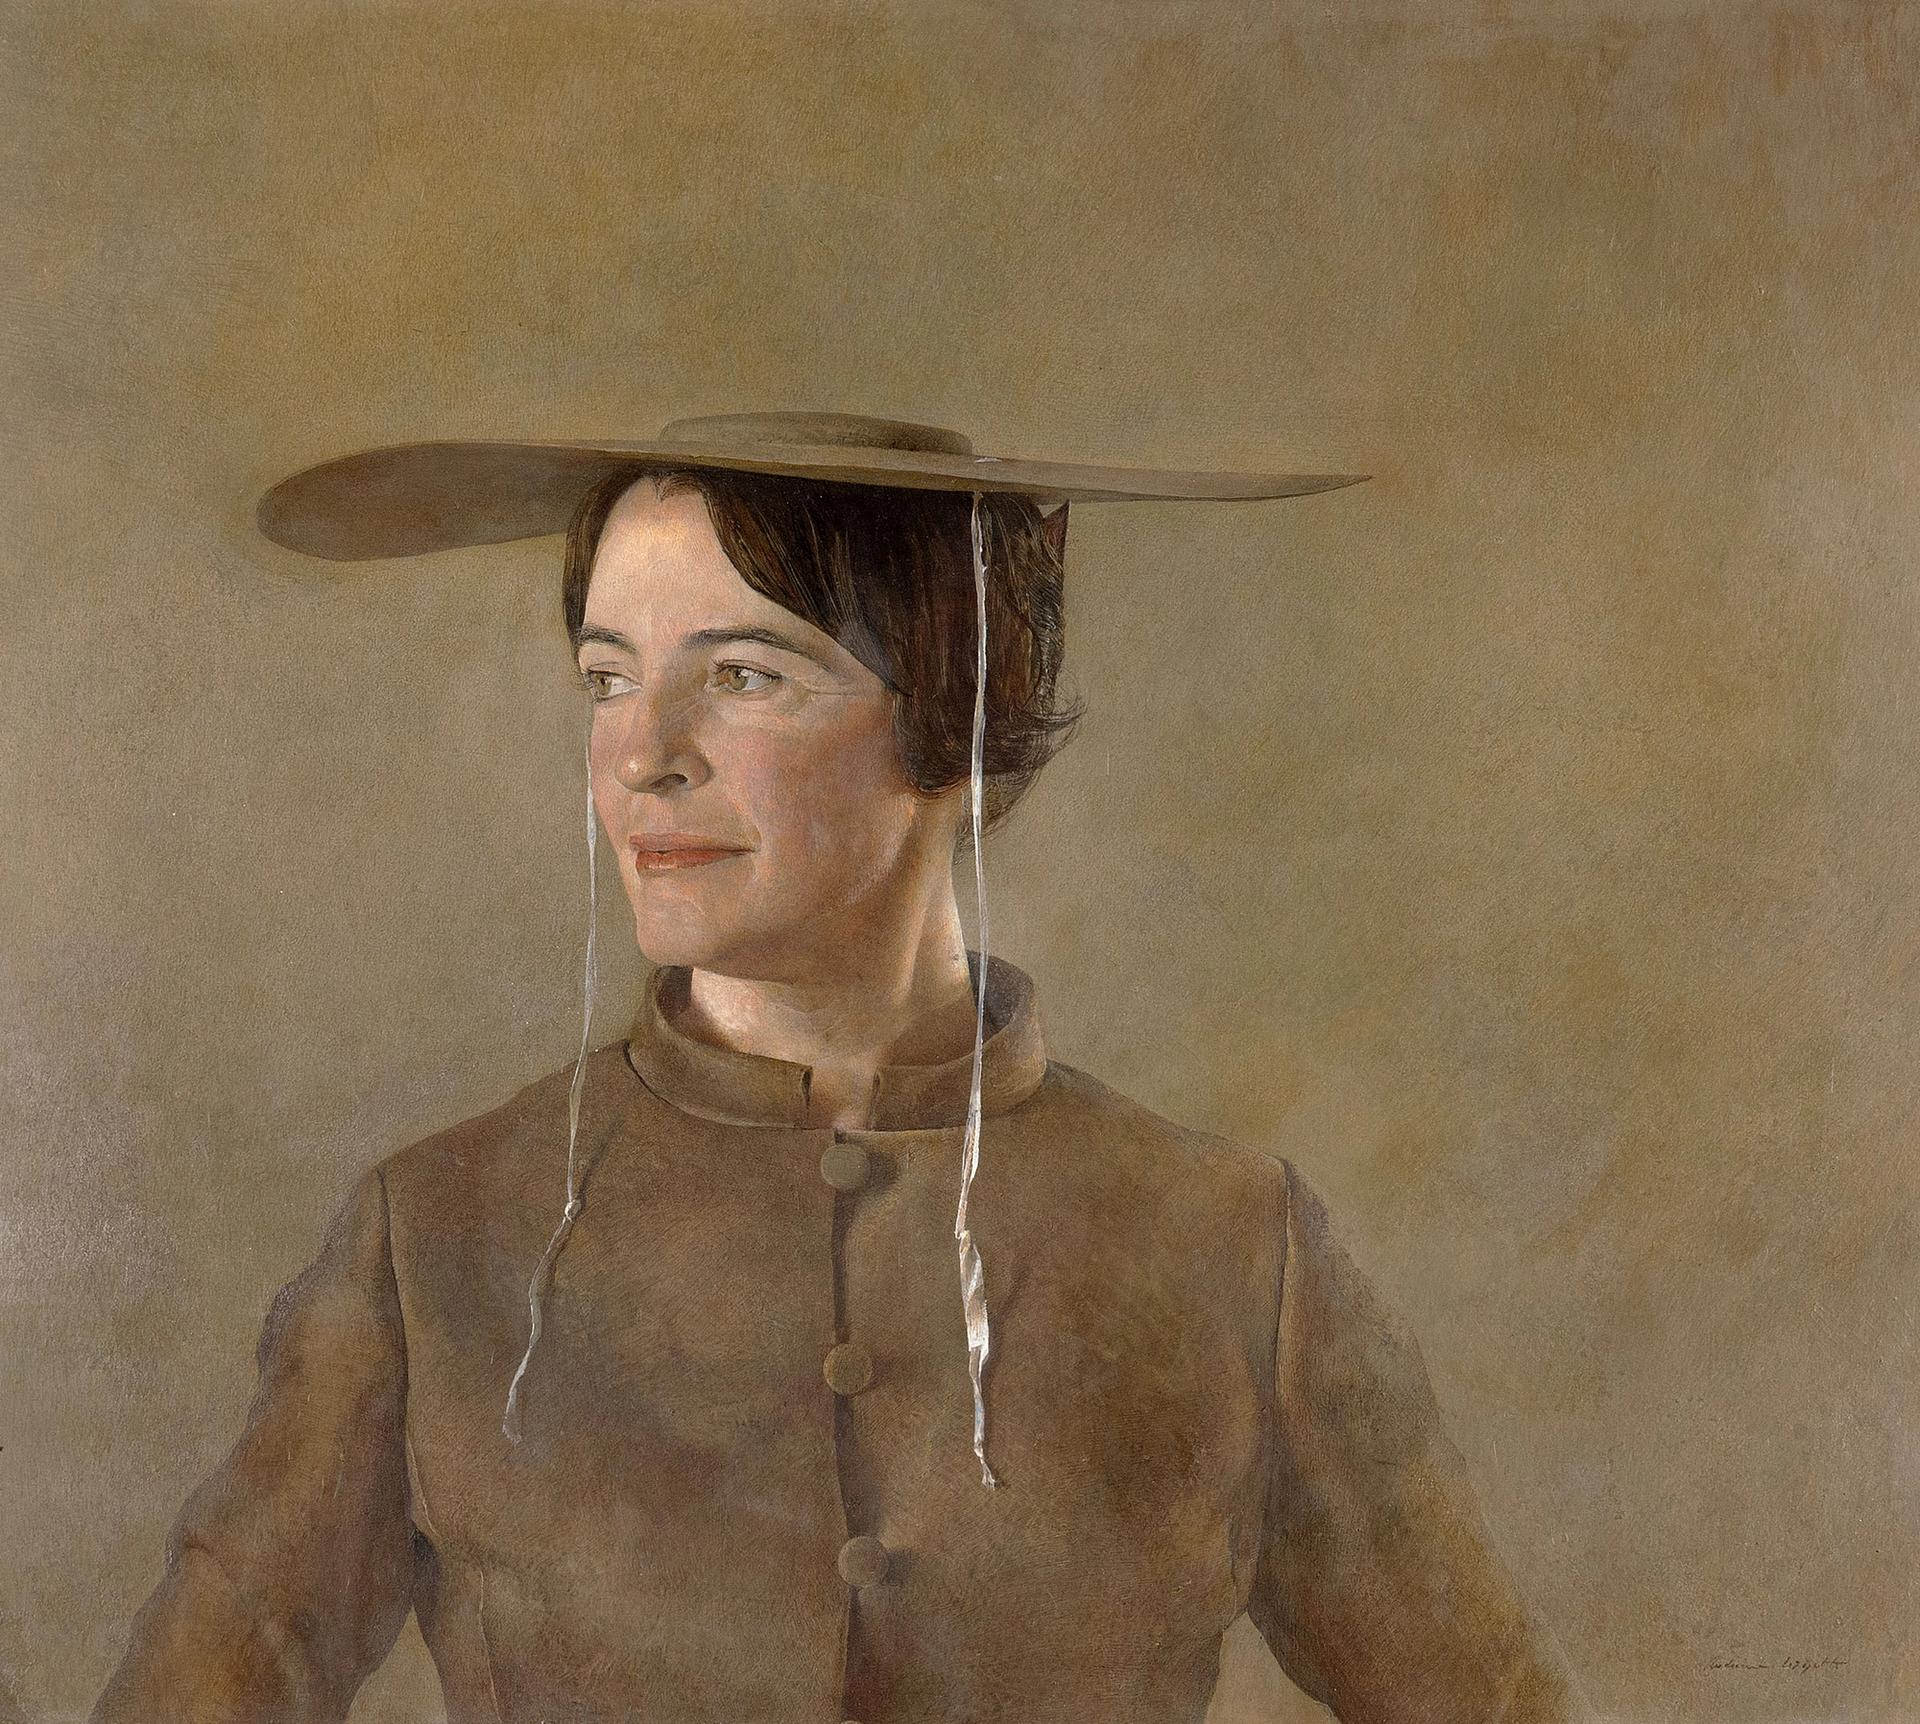 Andrew Wyeth (1917 - 2009), Maga's Daughter (1966). Andrew and Betsy Wyeth Collection © Andrew Wyeth/ARS, NY